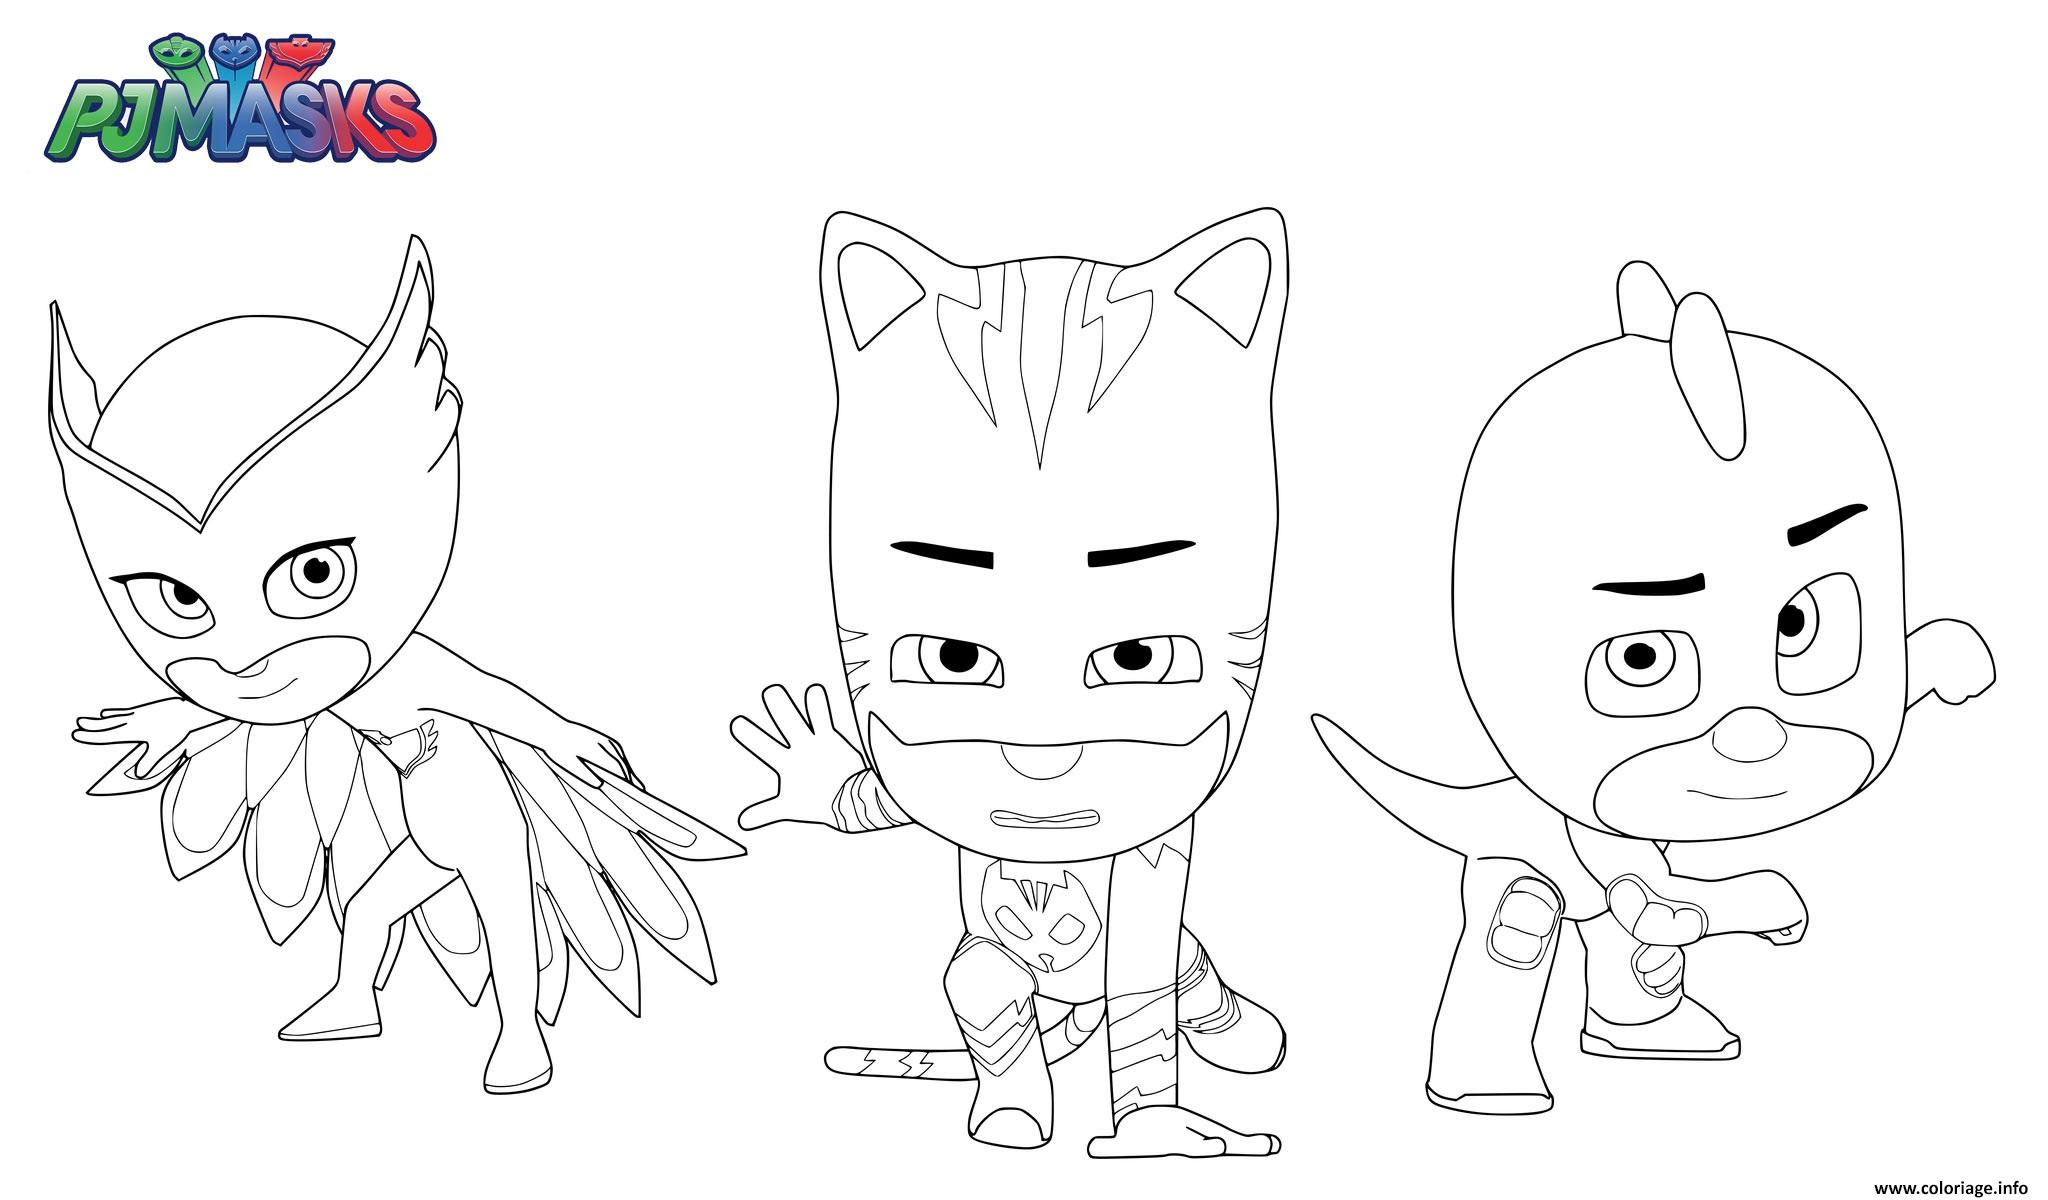 Coloriage pyjamasques pj masks superheros gluglu bibou yoyo dessin - Pyjamasques coloriage ...